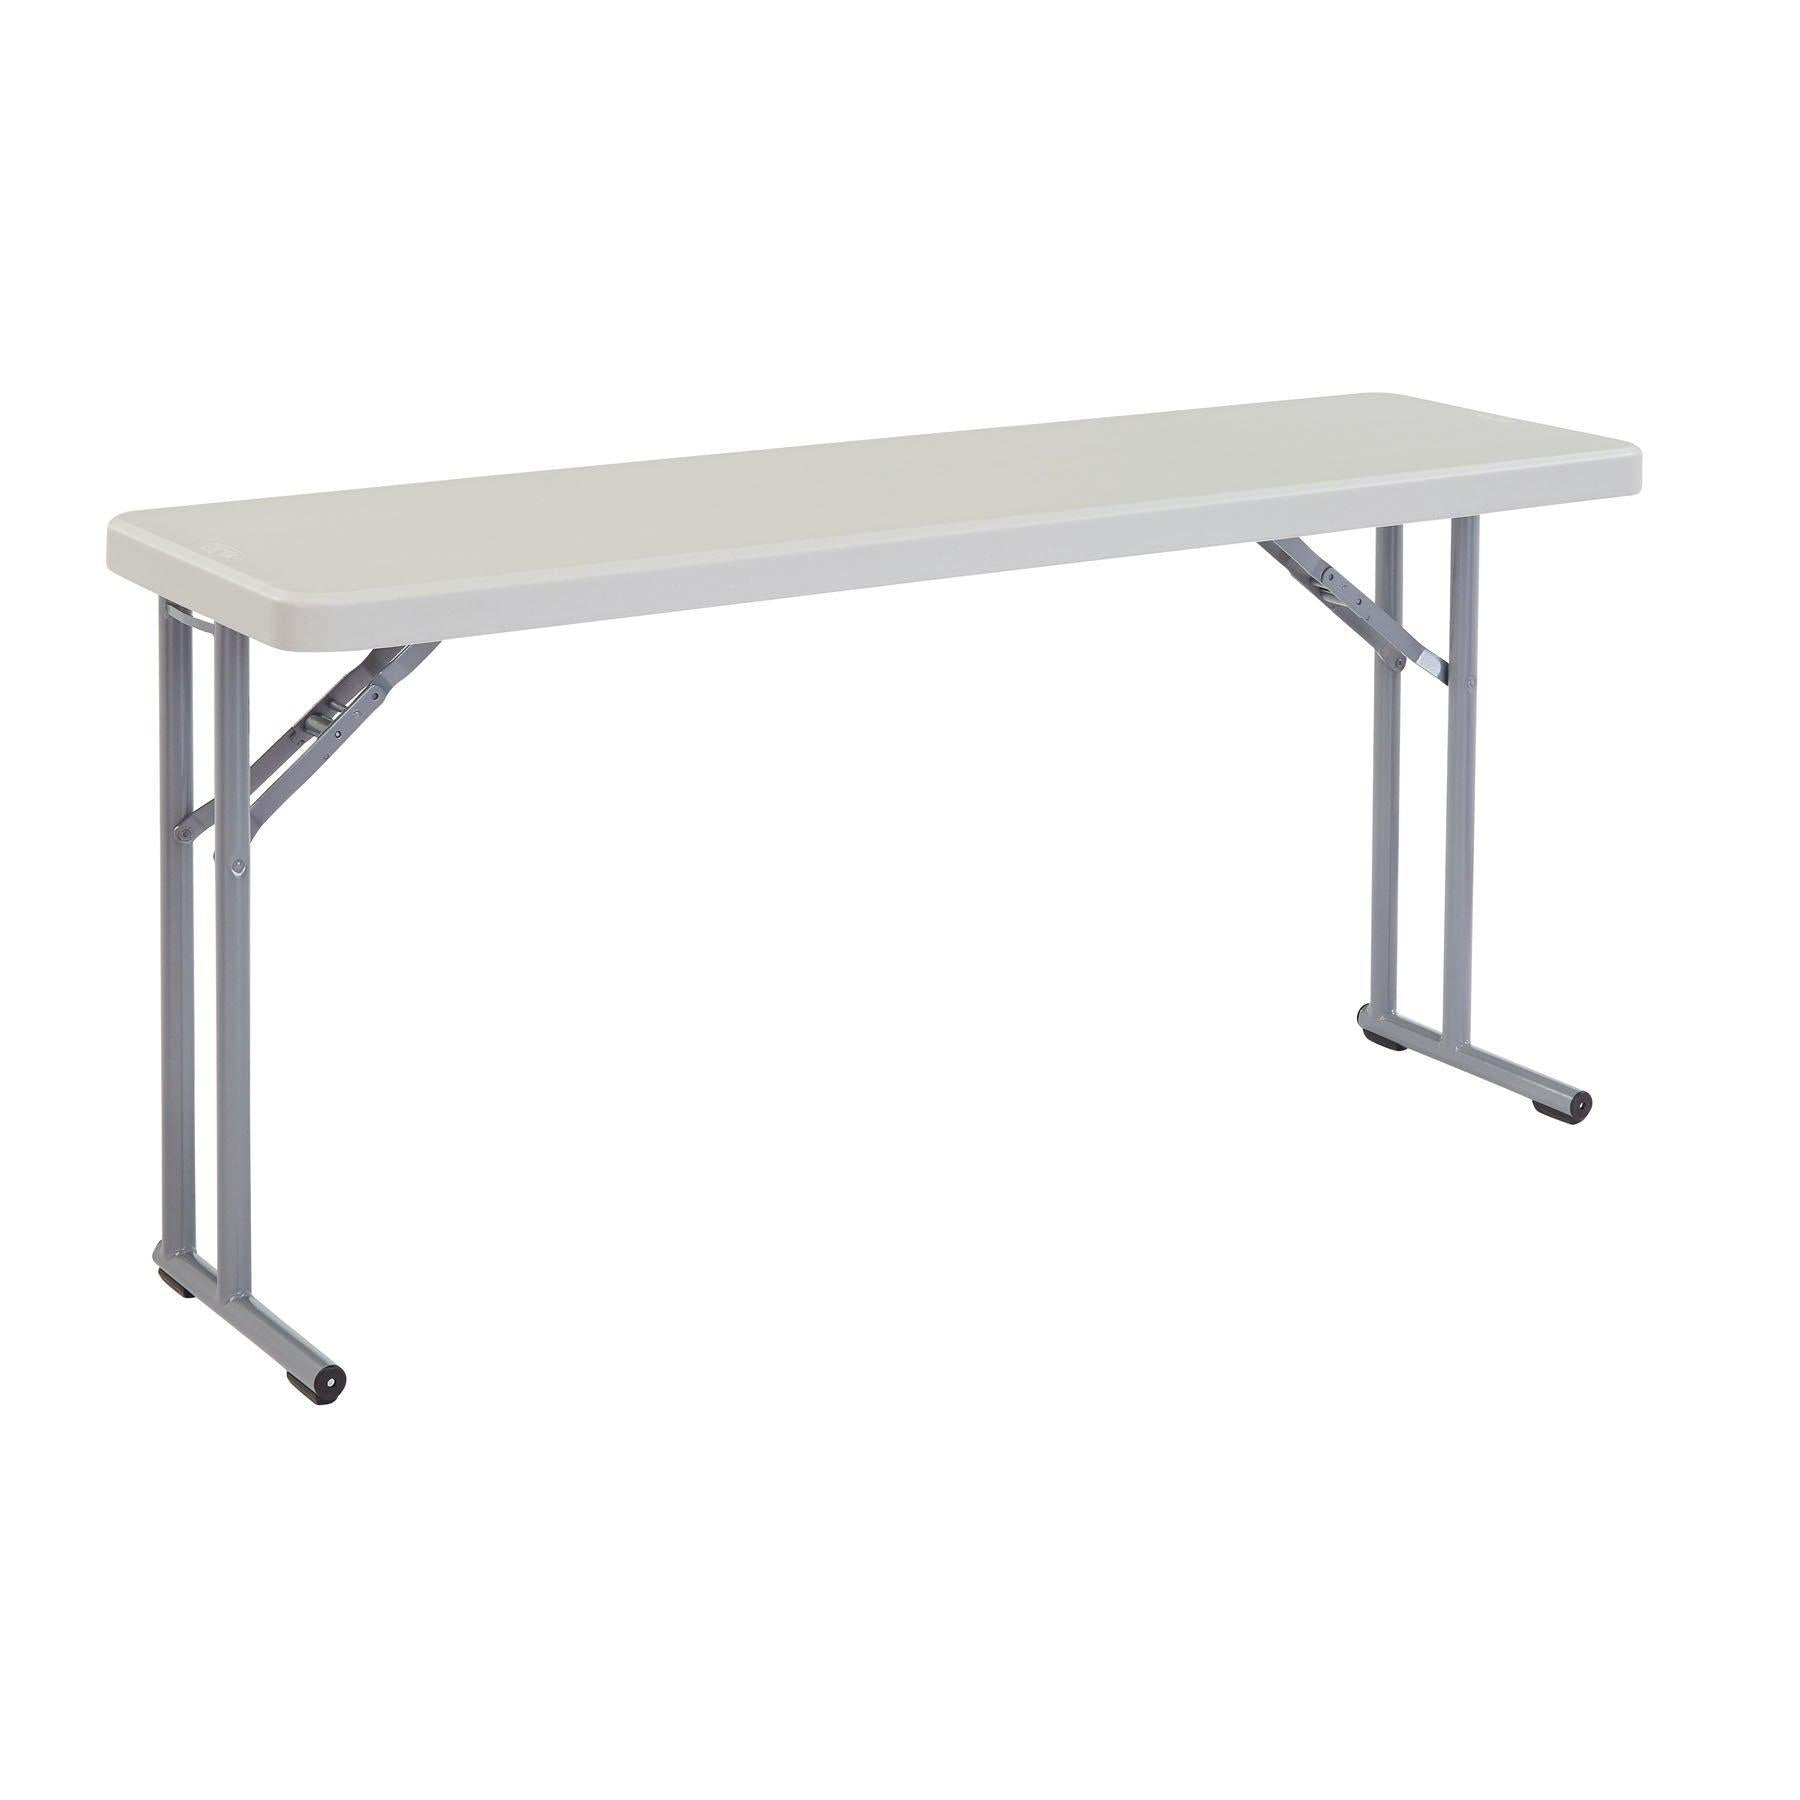 Heavy Duty Seminar Folding Table, Speckled Grey